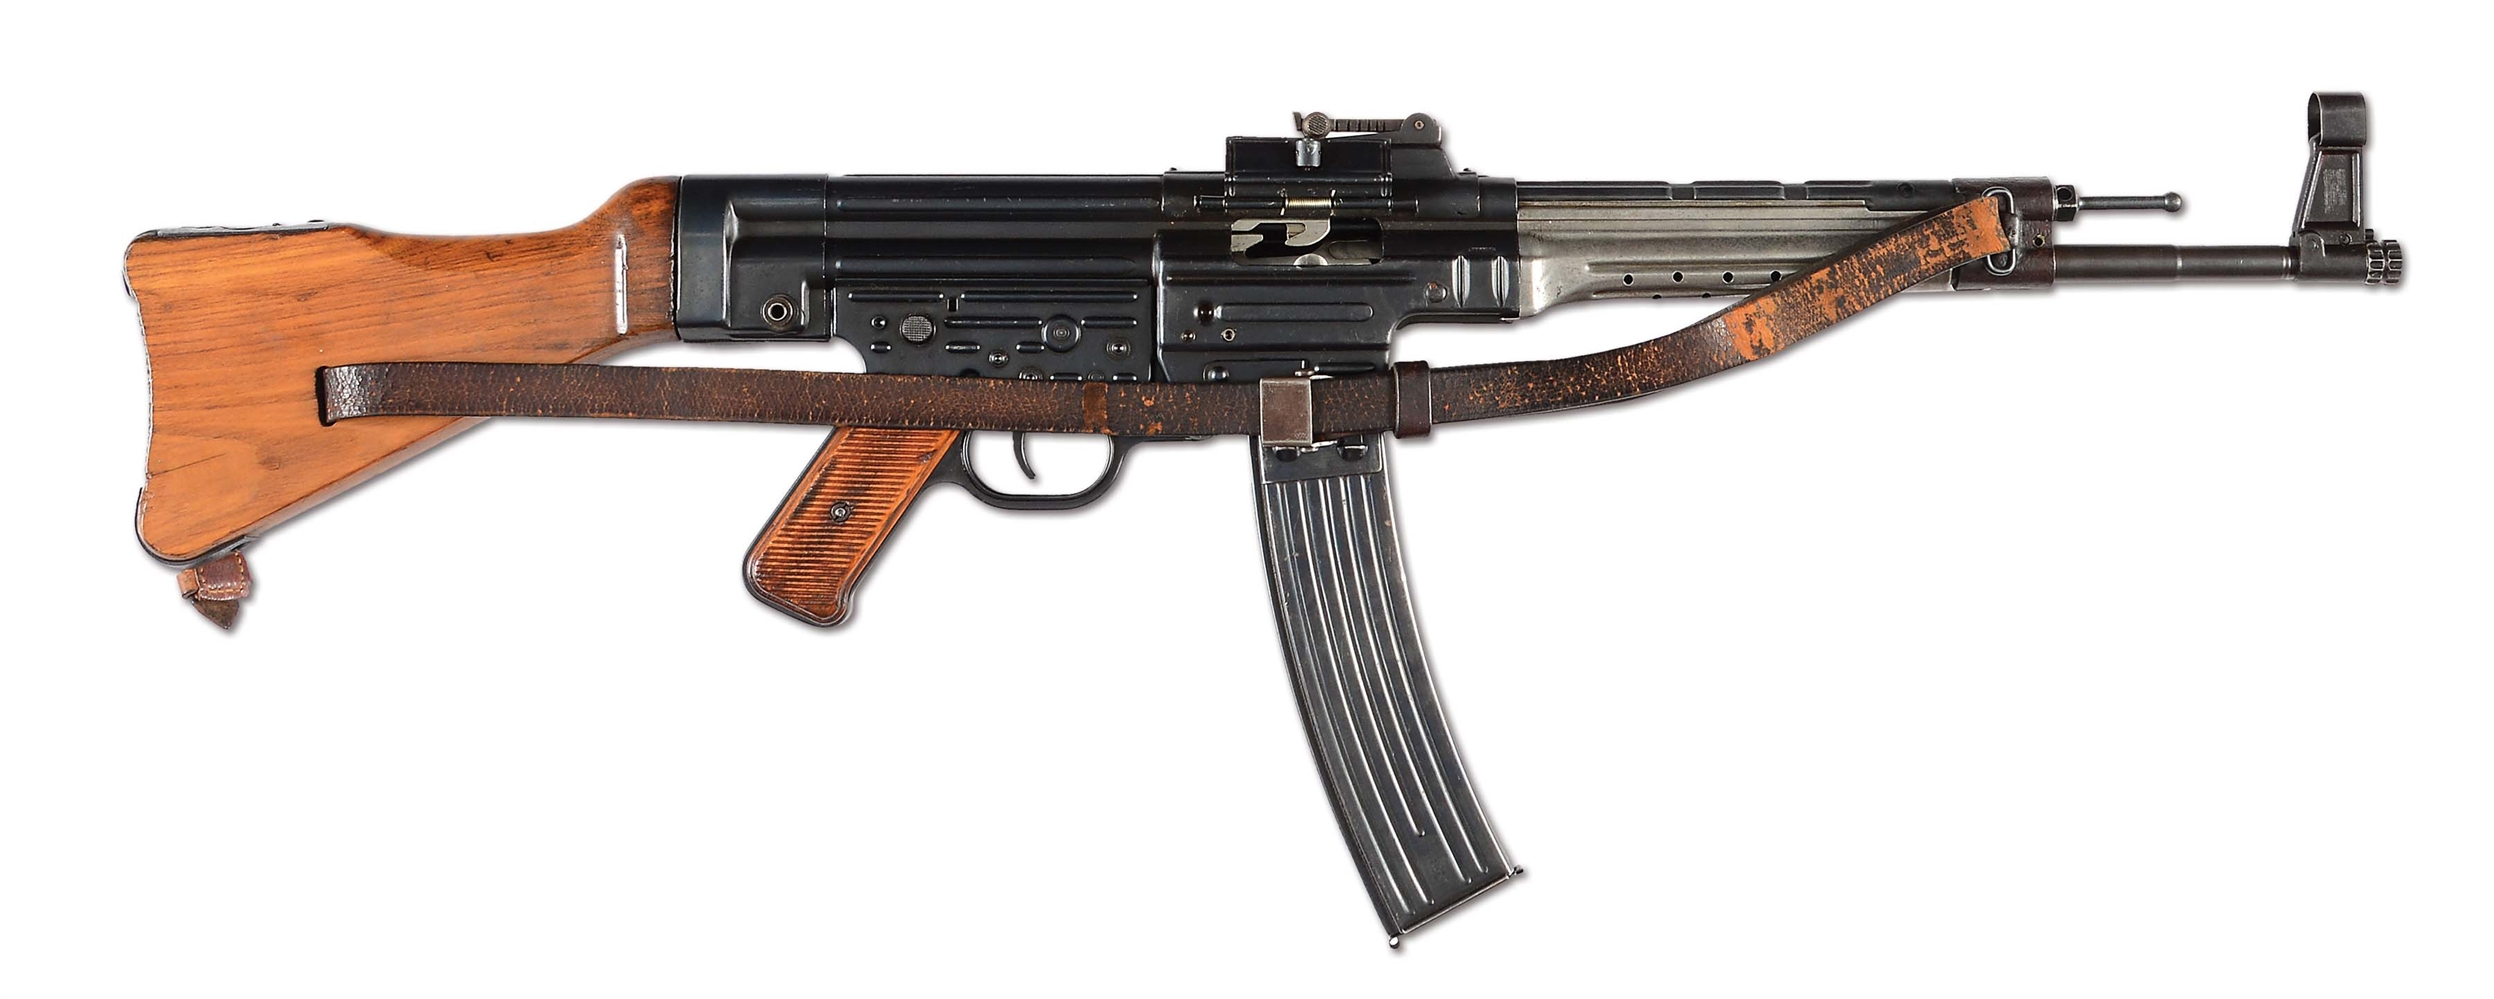 (N) EXCEPTIONALLY ATTRACTIVE GERMAN MP-44 MACHINE GUN WITH SLING (CURIO AND RELIC).